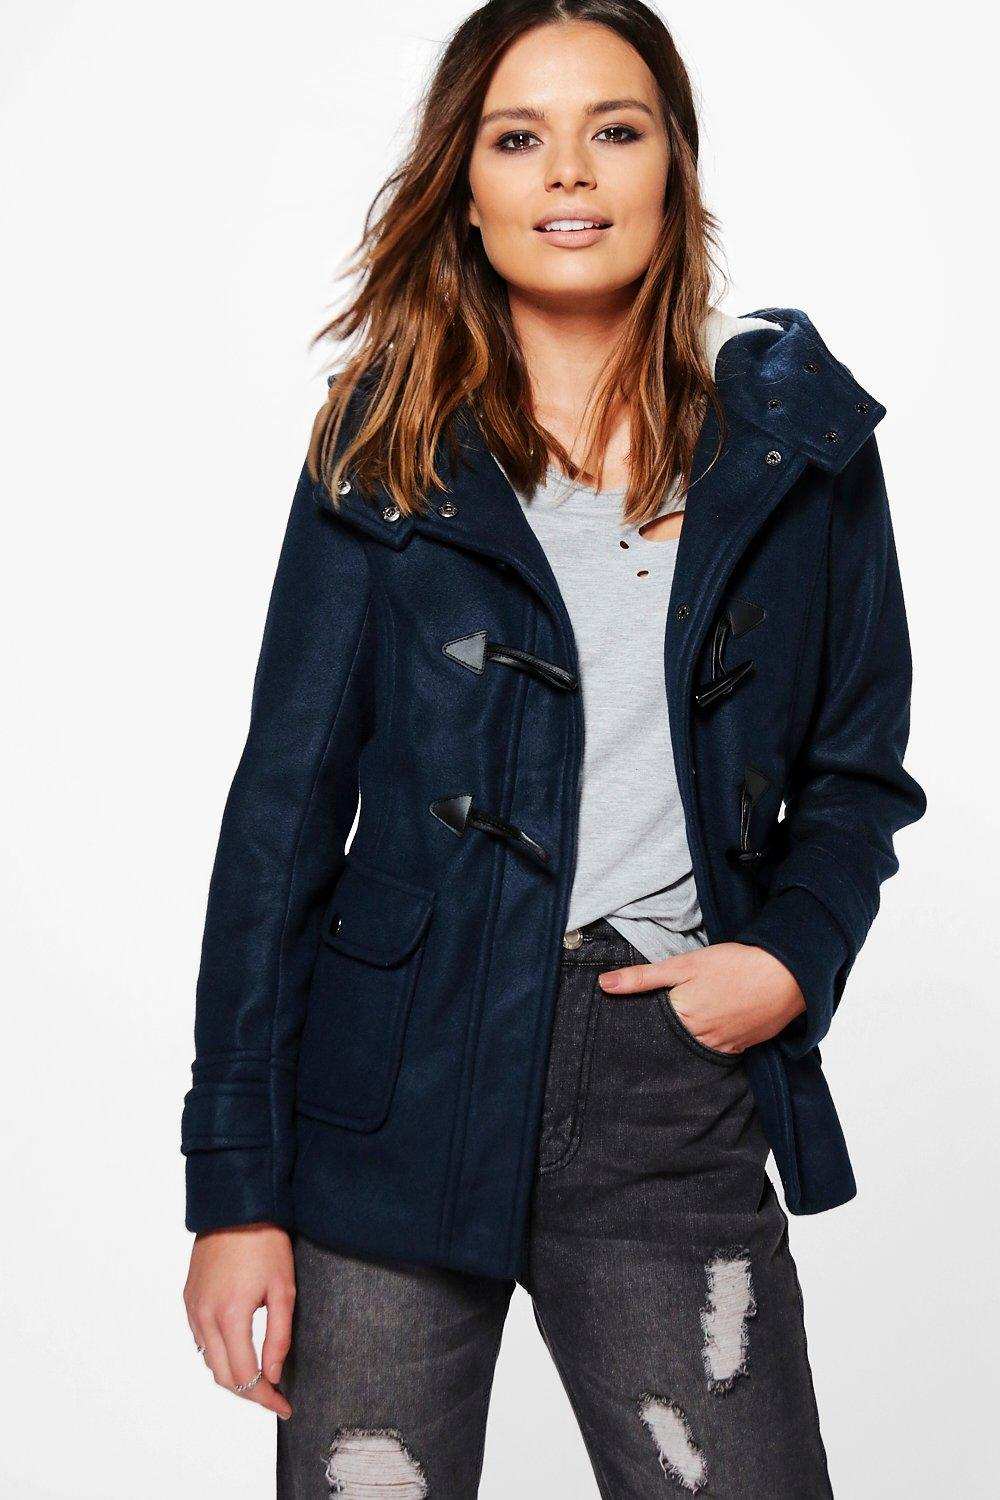 Sarah Wool Look Jacket With Faux Fur Hood Lining